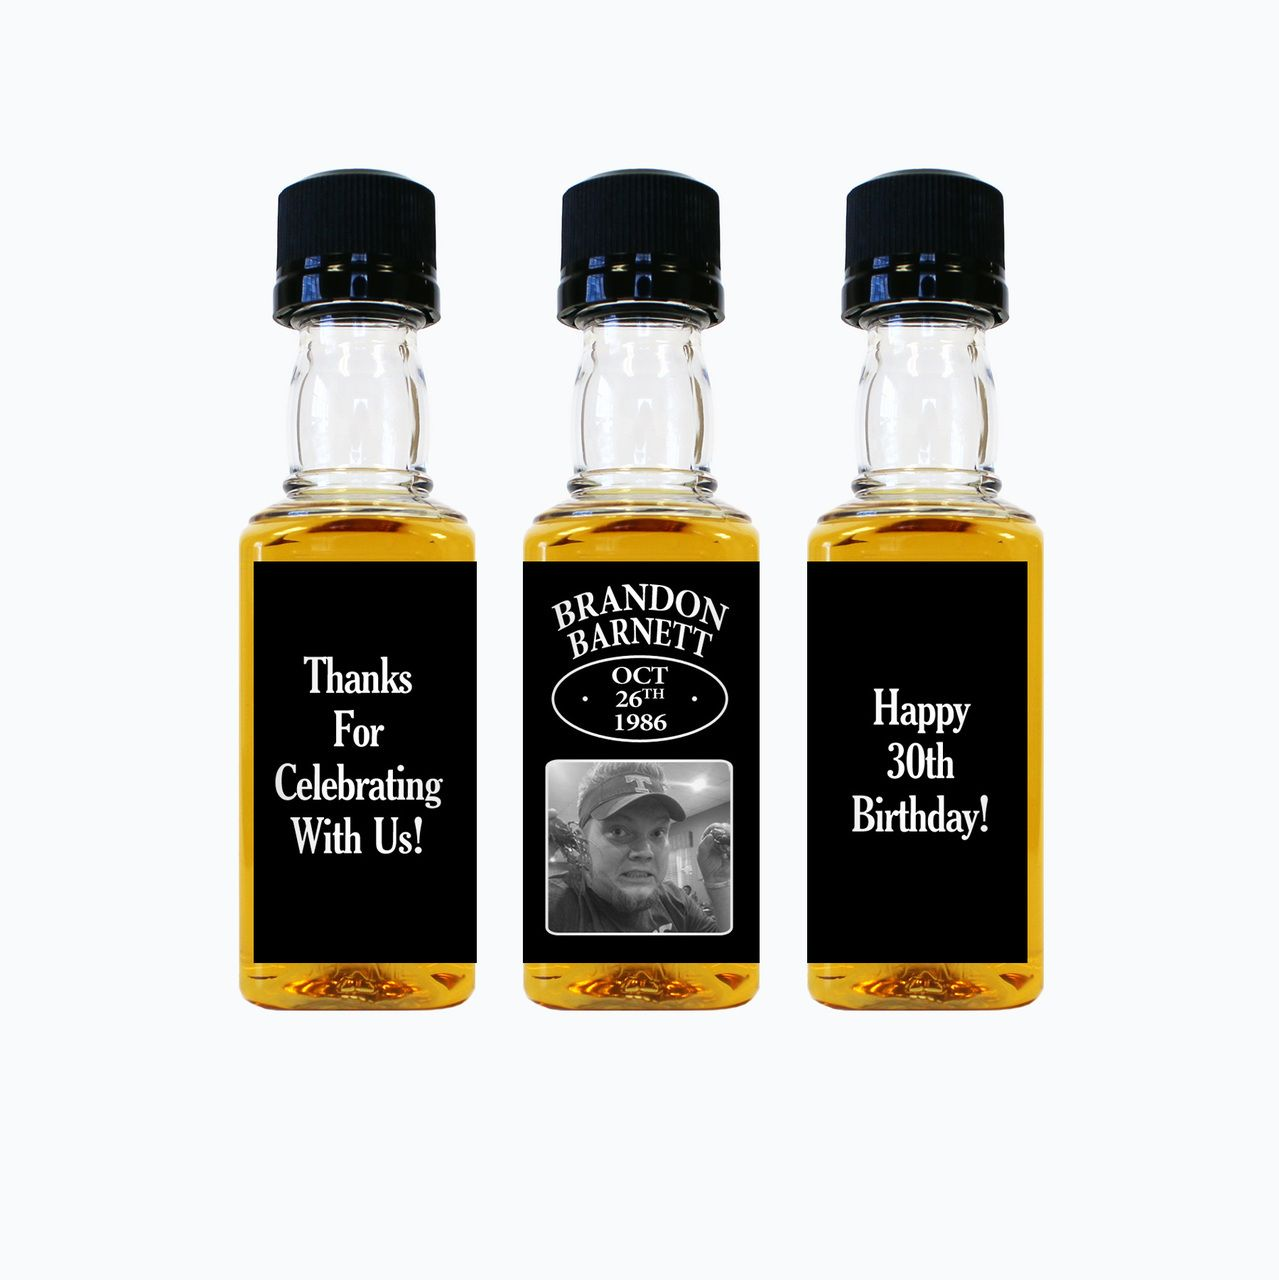 Happy Birthday Custom Mini Bottles | Mini bottles, Happy birthday ...